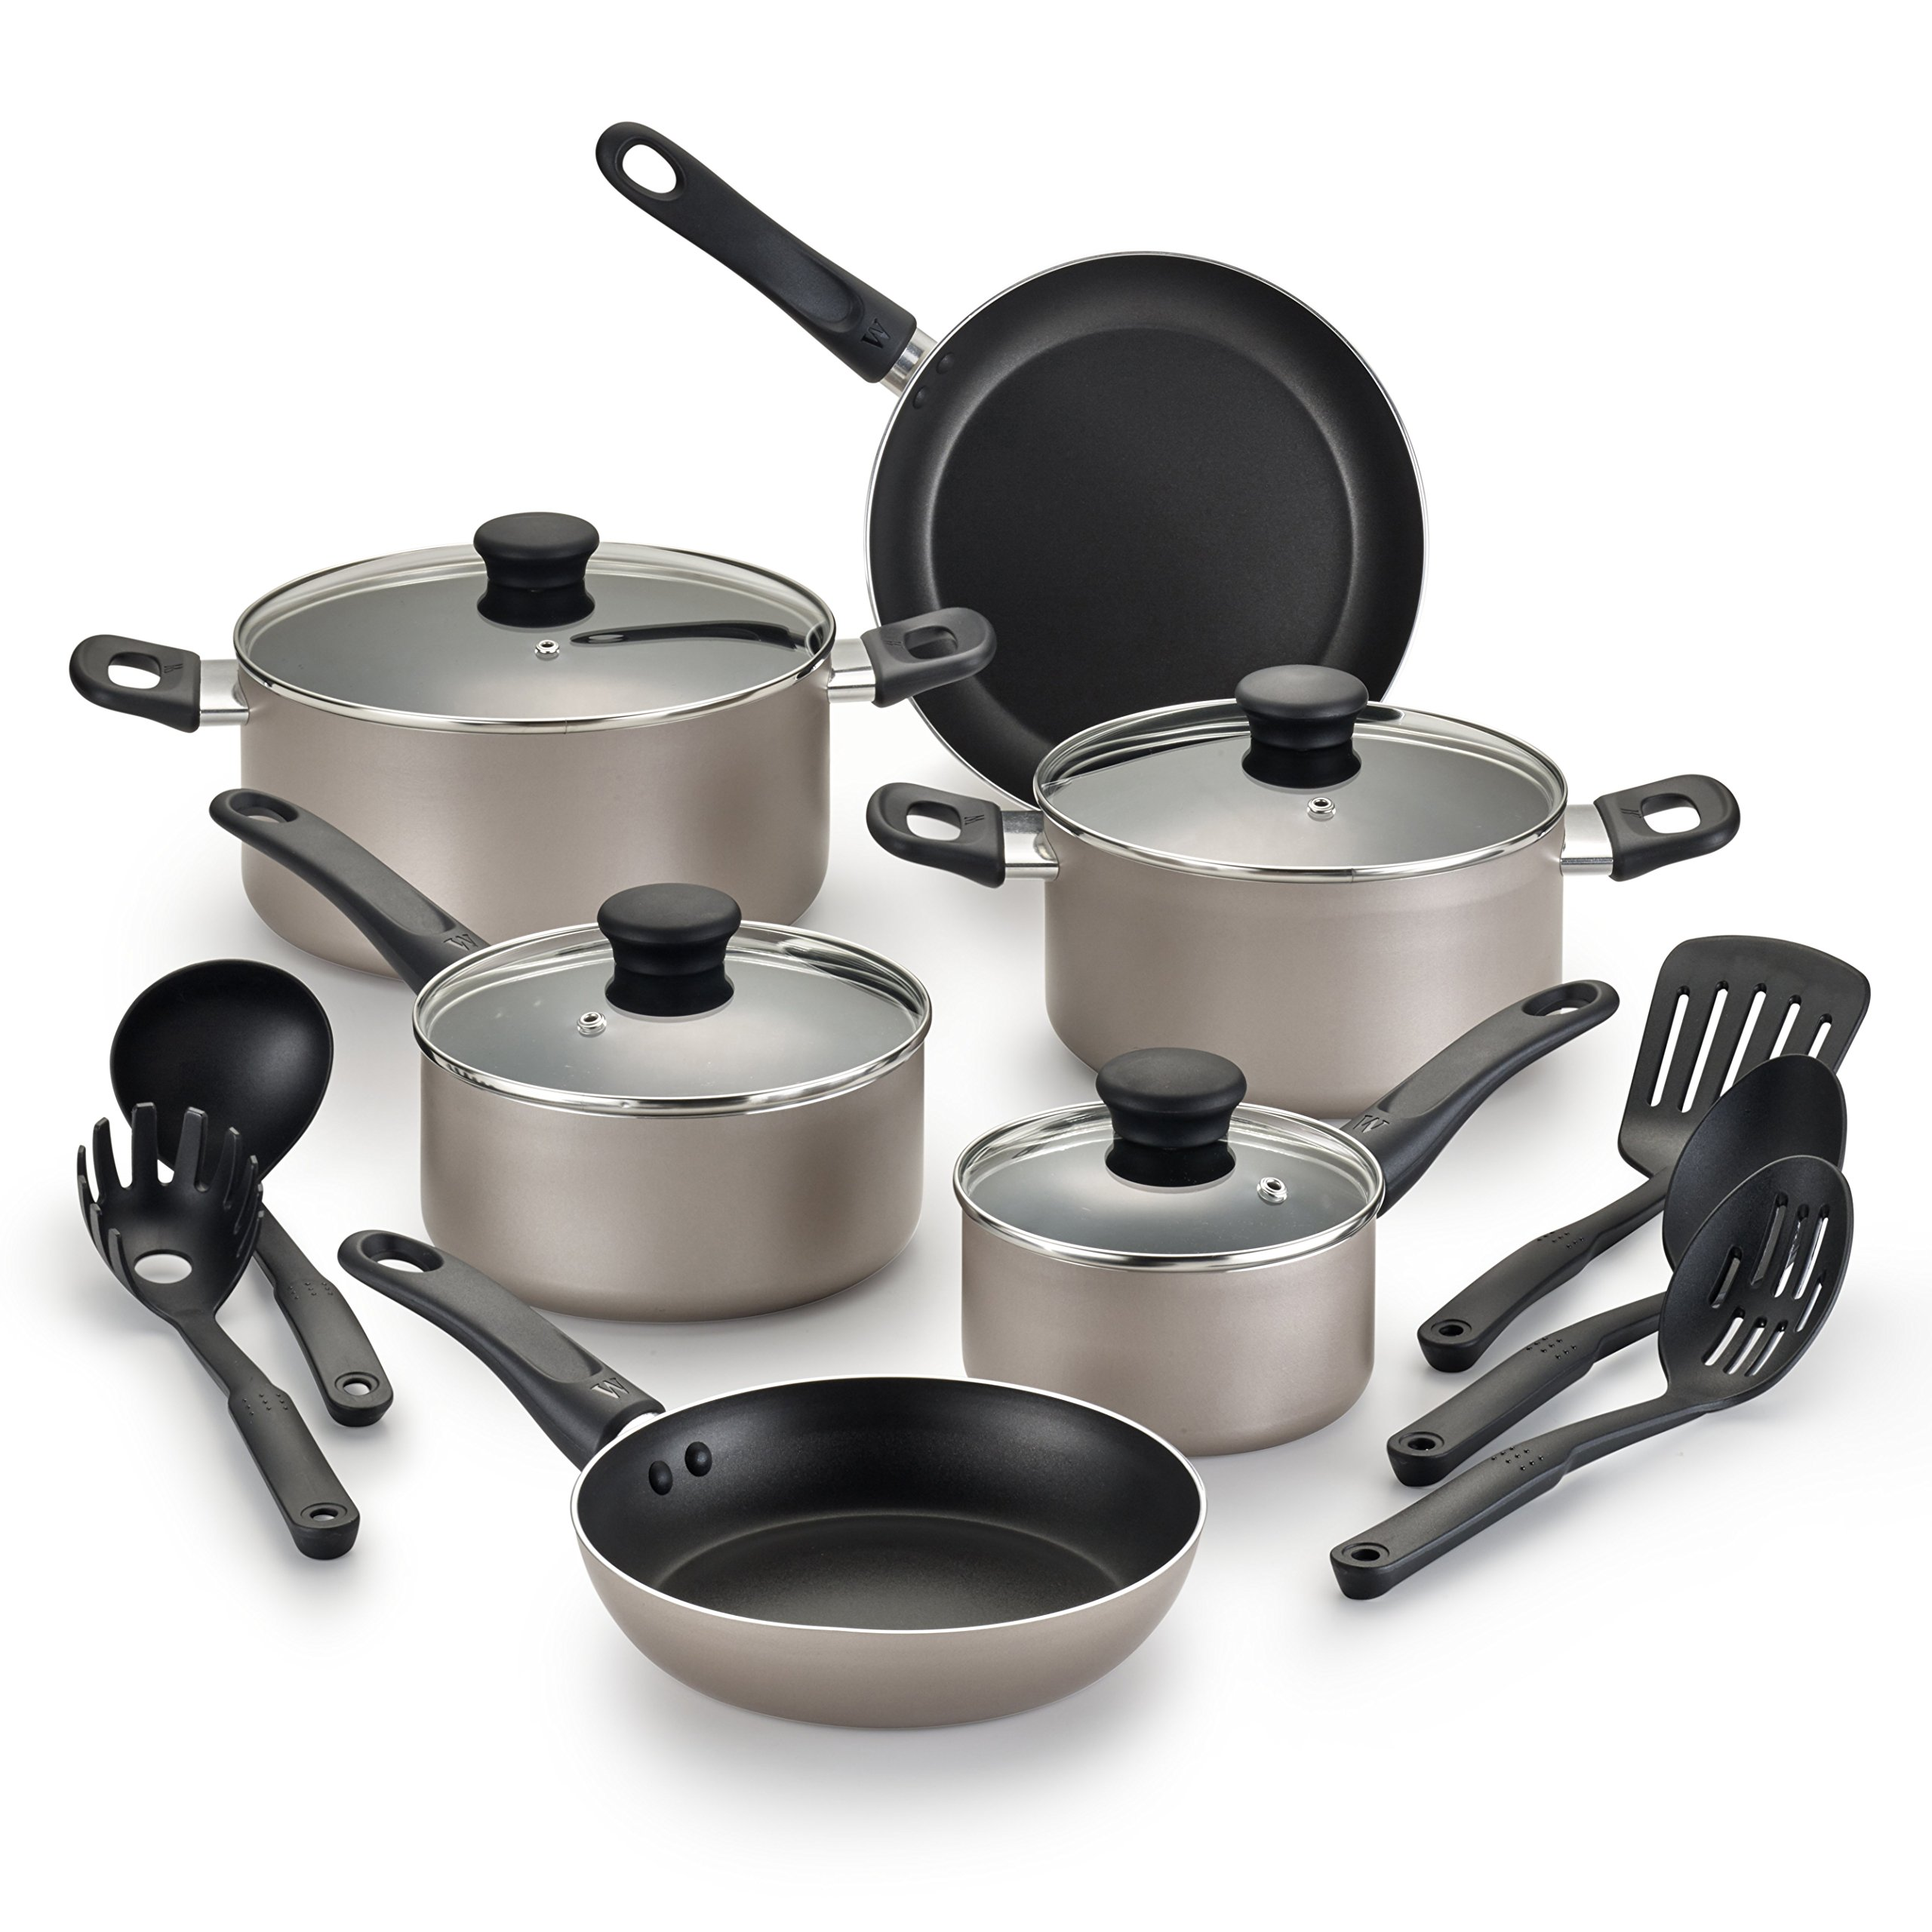 WearEver Nonstick Cookware Set, 15 Pieces, Pots and Pans Set, Champagne